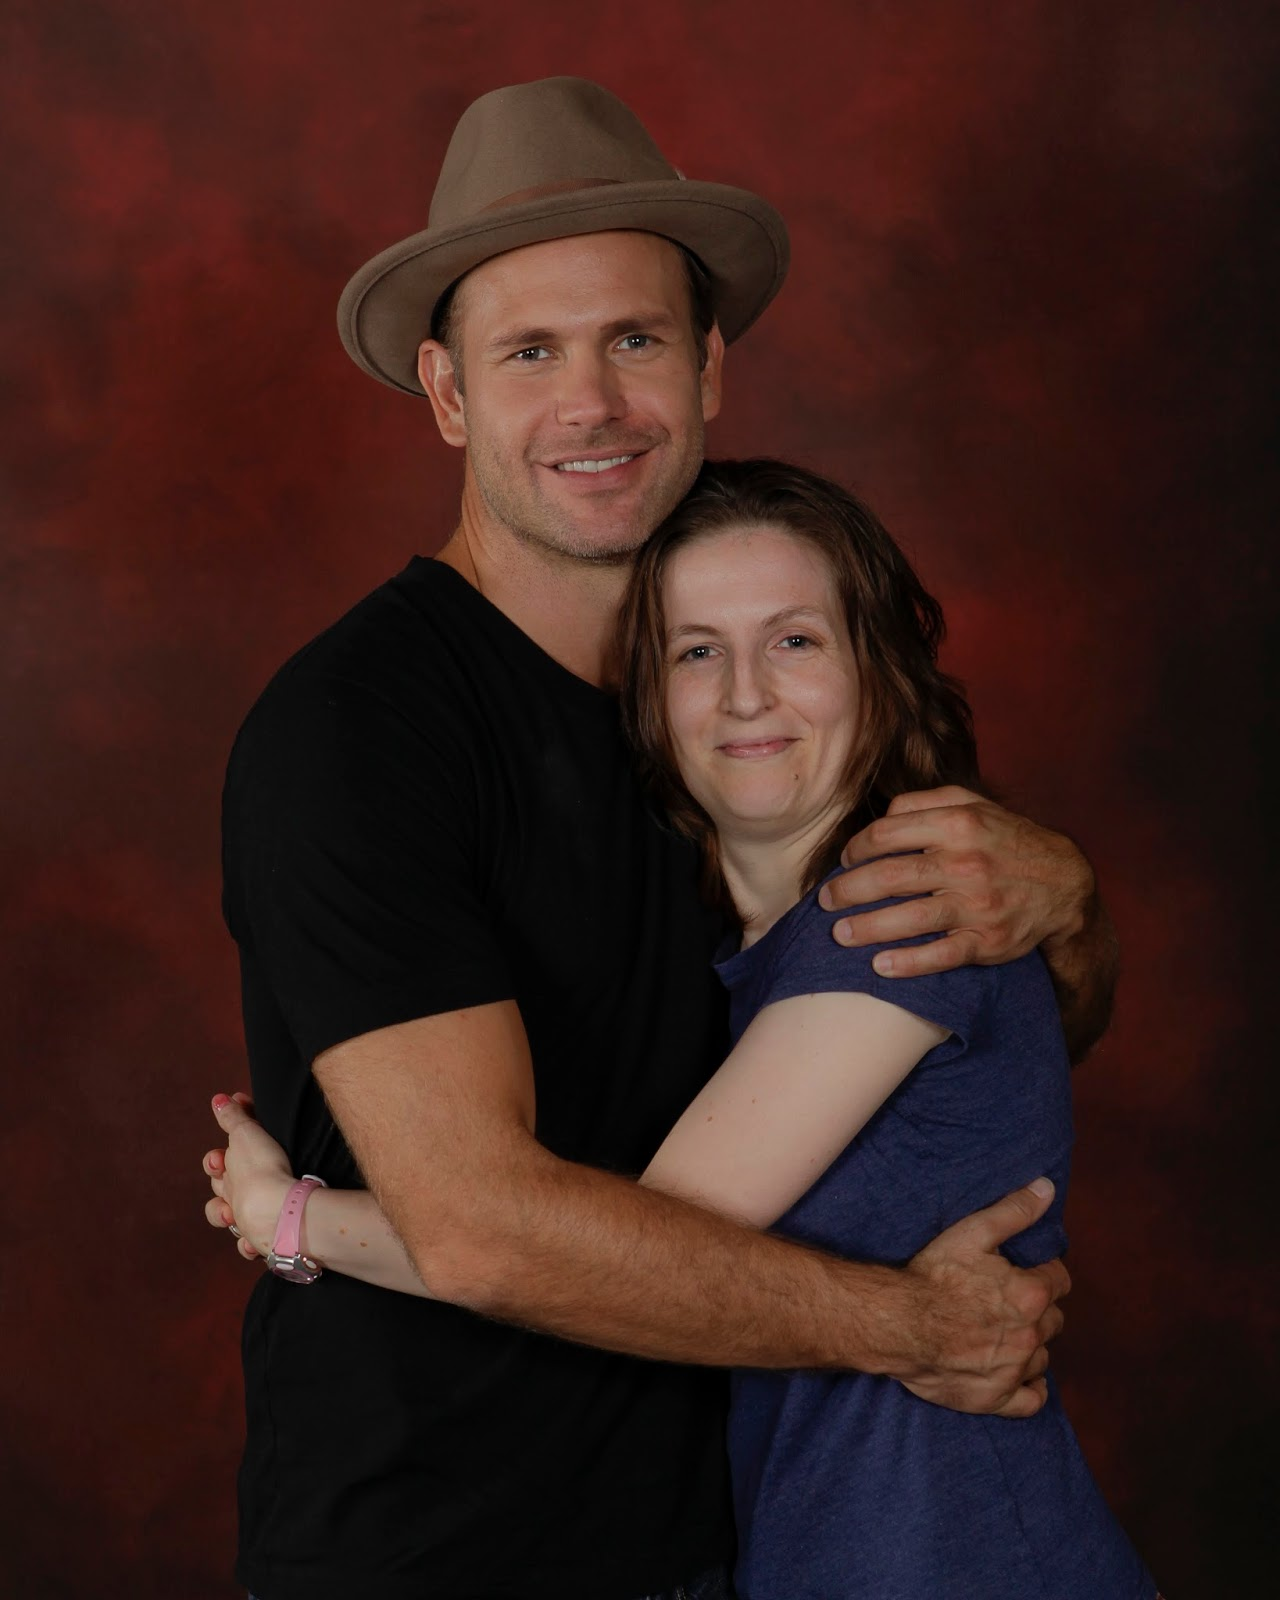 Rebeccas interests and life matt davis the vampire diaries i went to my second vampire diaries convention just to meet matt davis who plays alaric saltzman on the vampire diaries tv show m4hsunfo